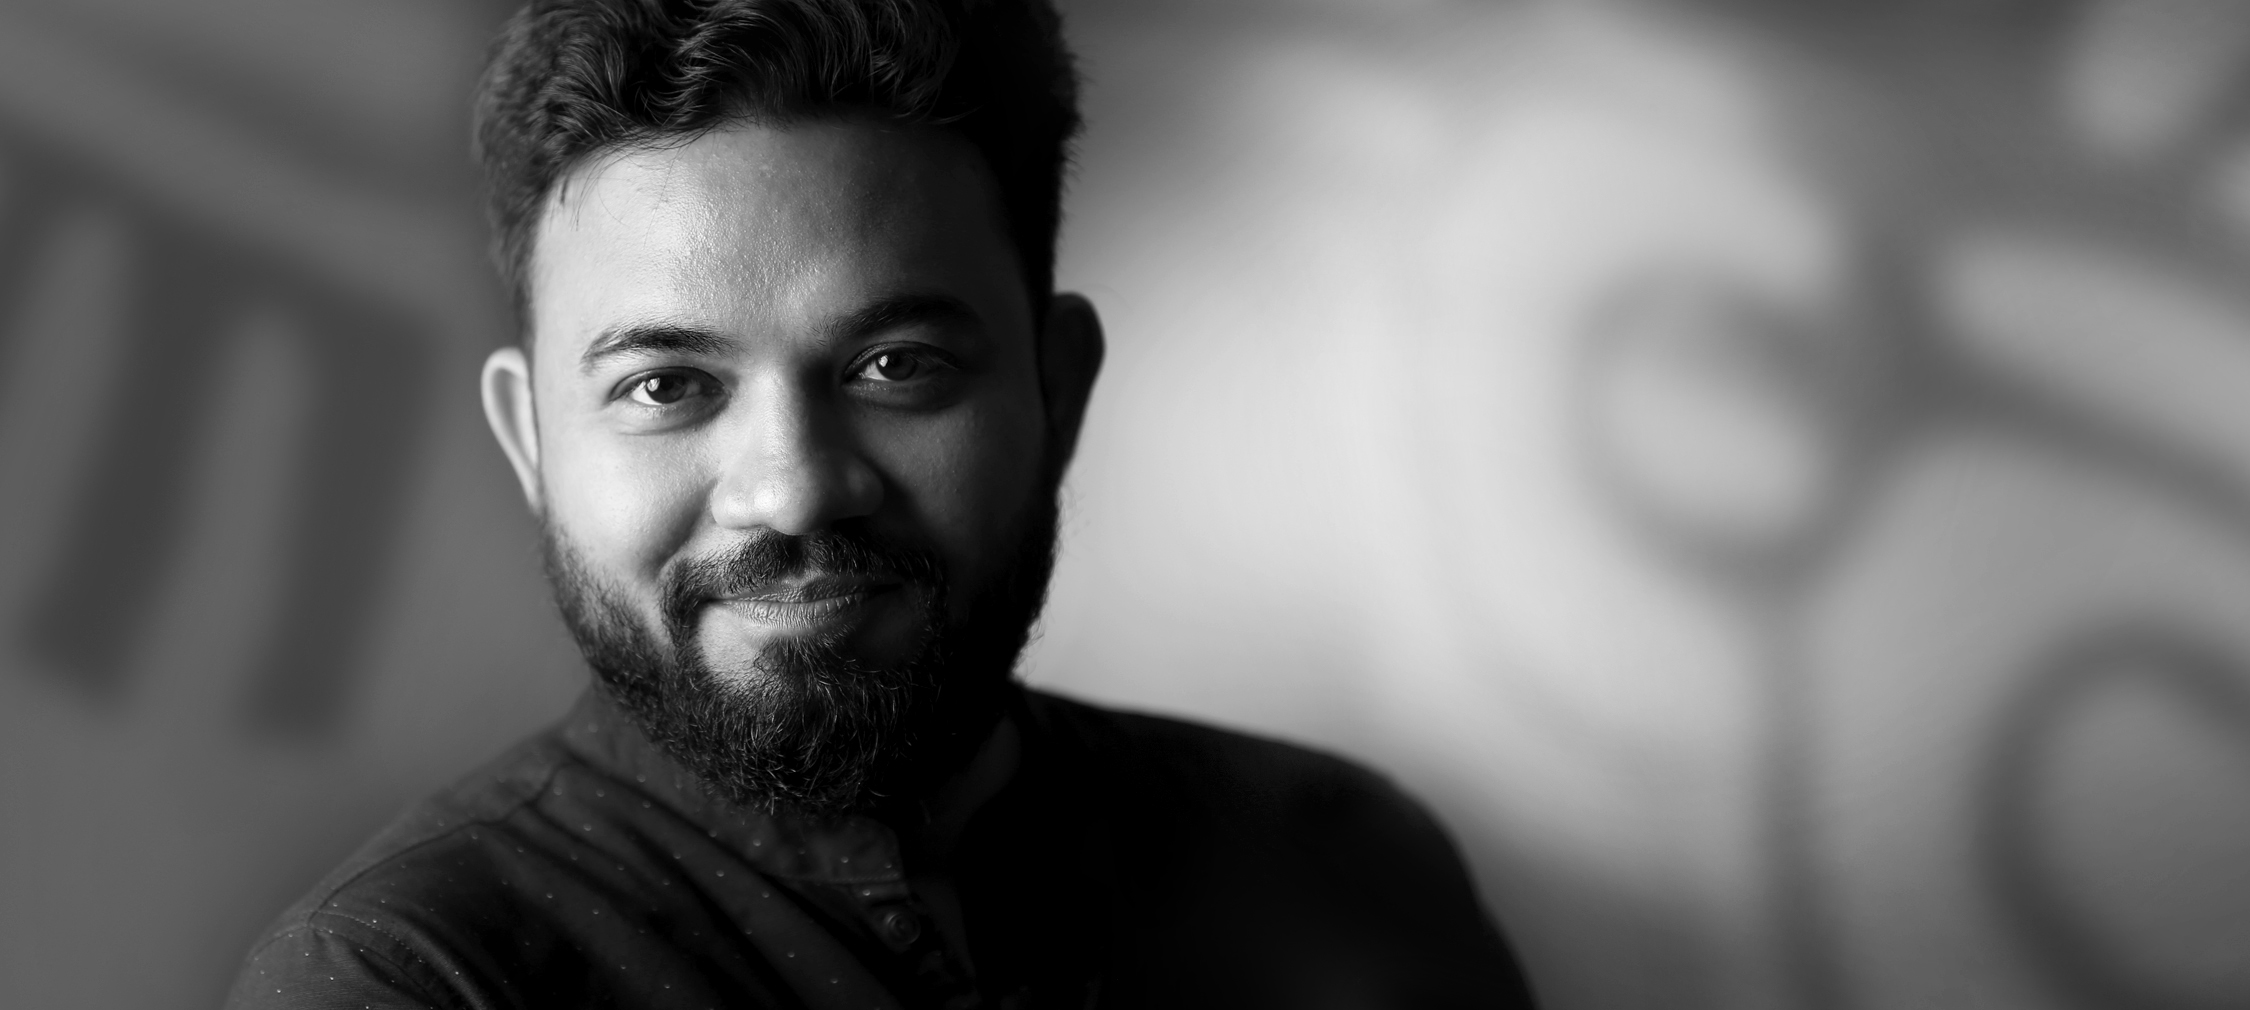 Things You Didn't Know About 'Vyasa' Illustrator Sankha Banerjee